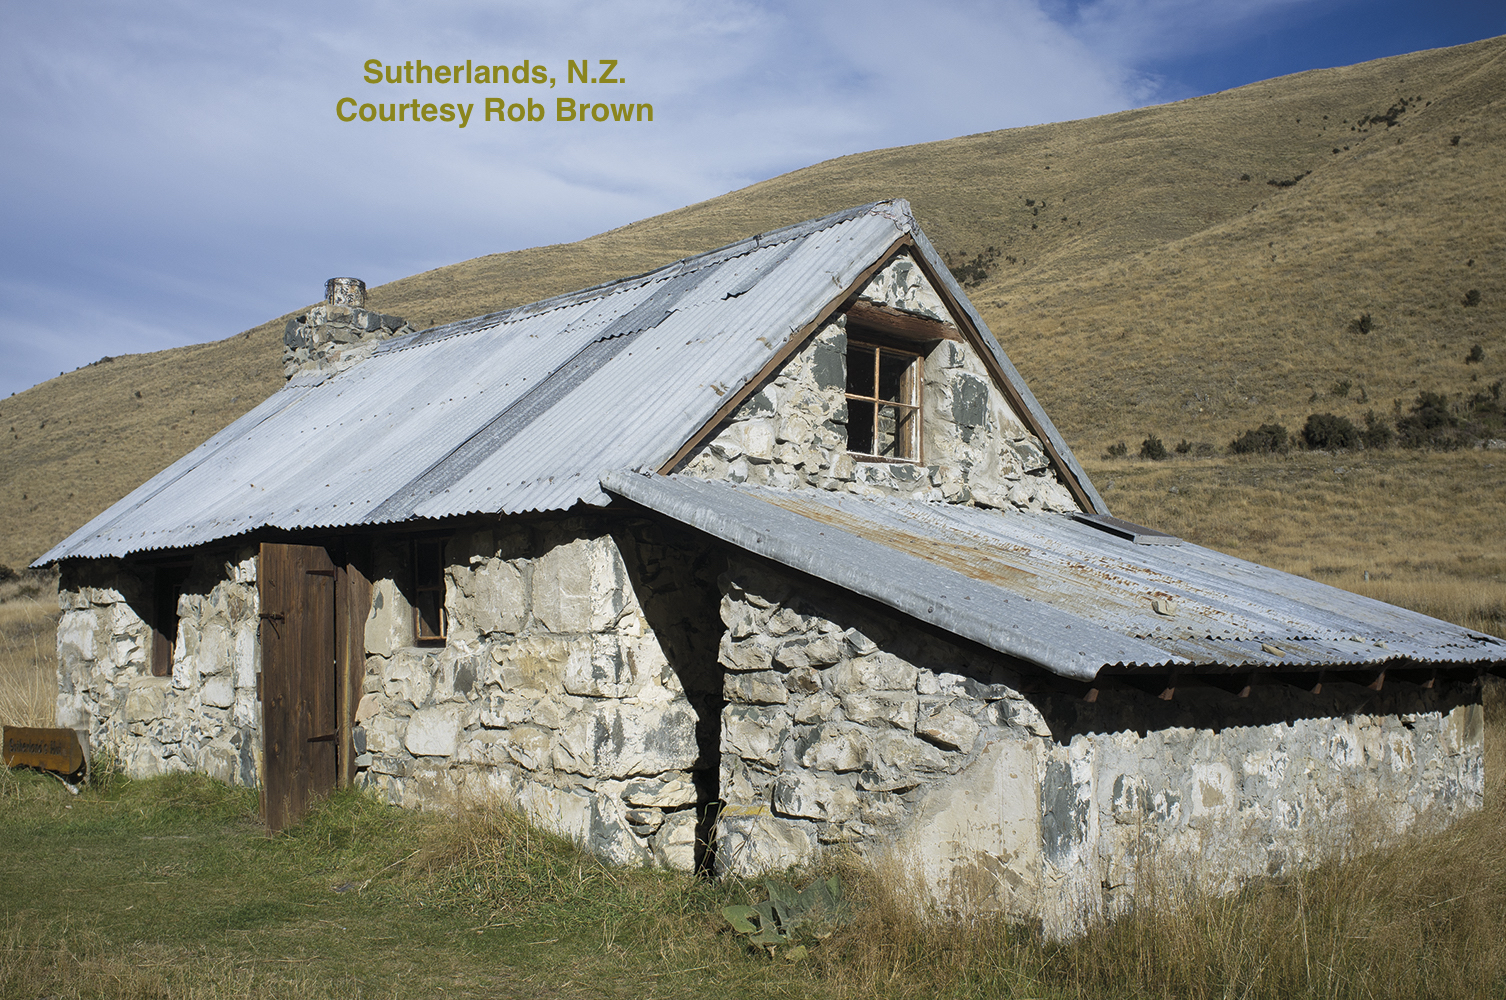 Sutherlands Hut, built 1860's - a former boundary keepers hut